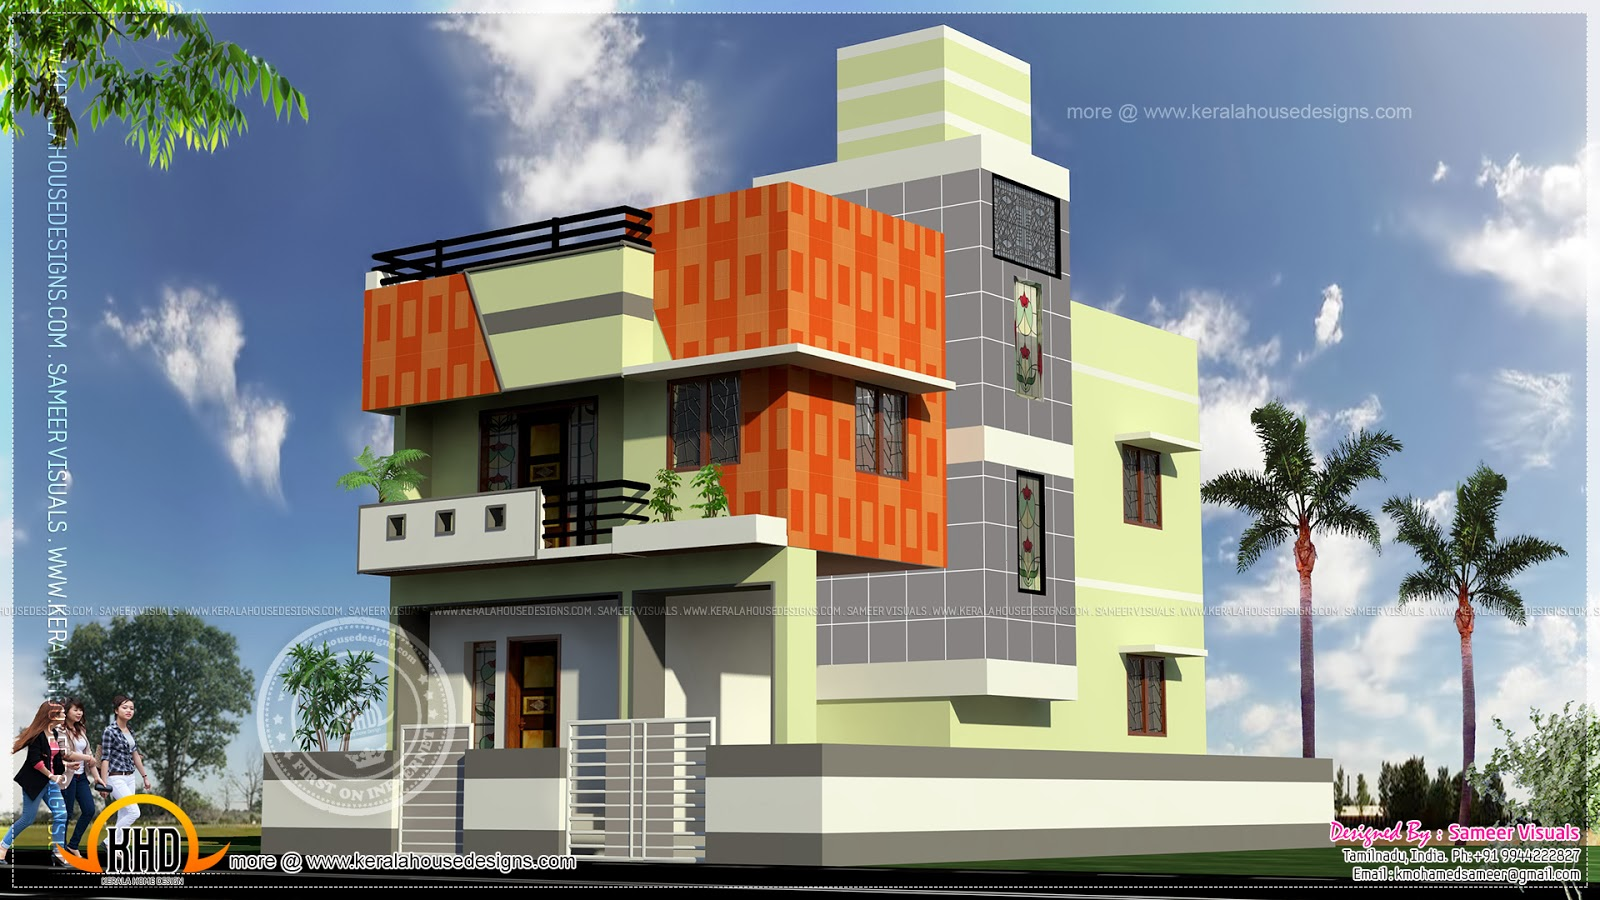 Tamilnadu style flat roof home house specification